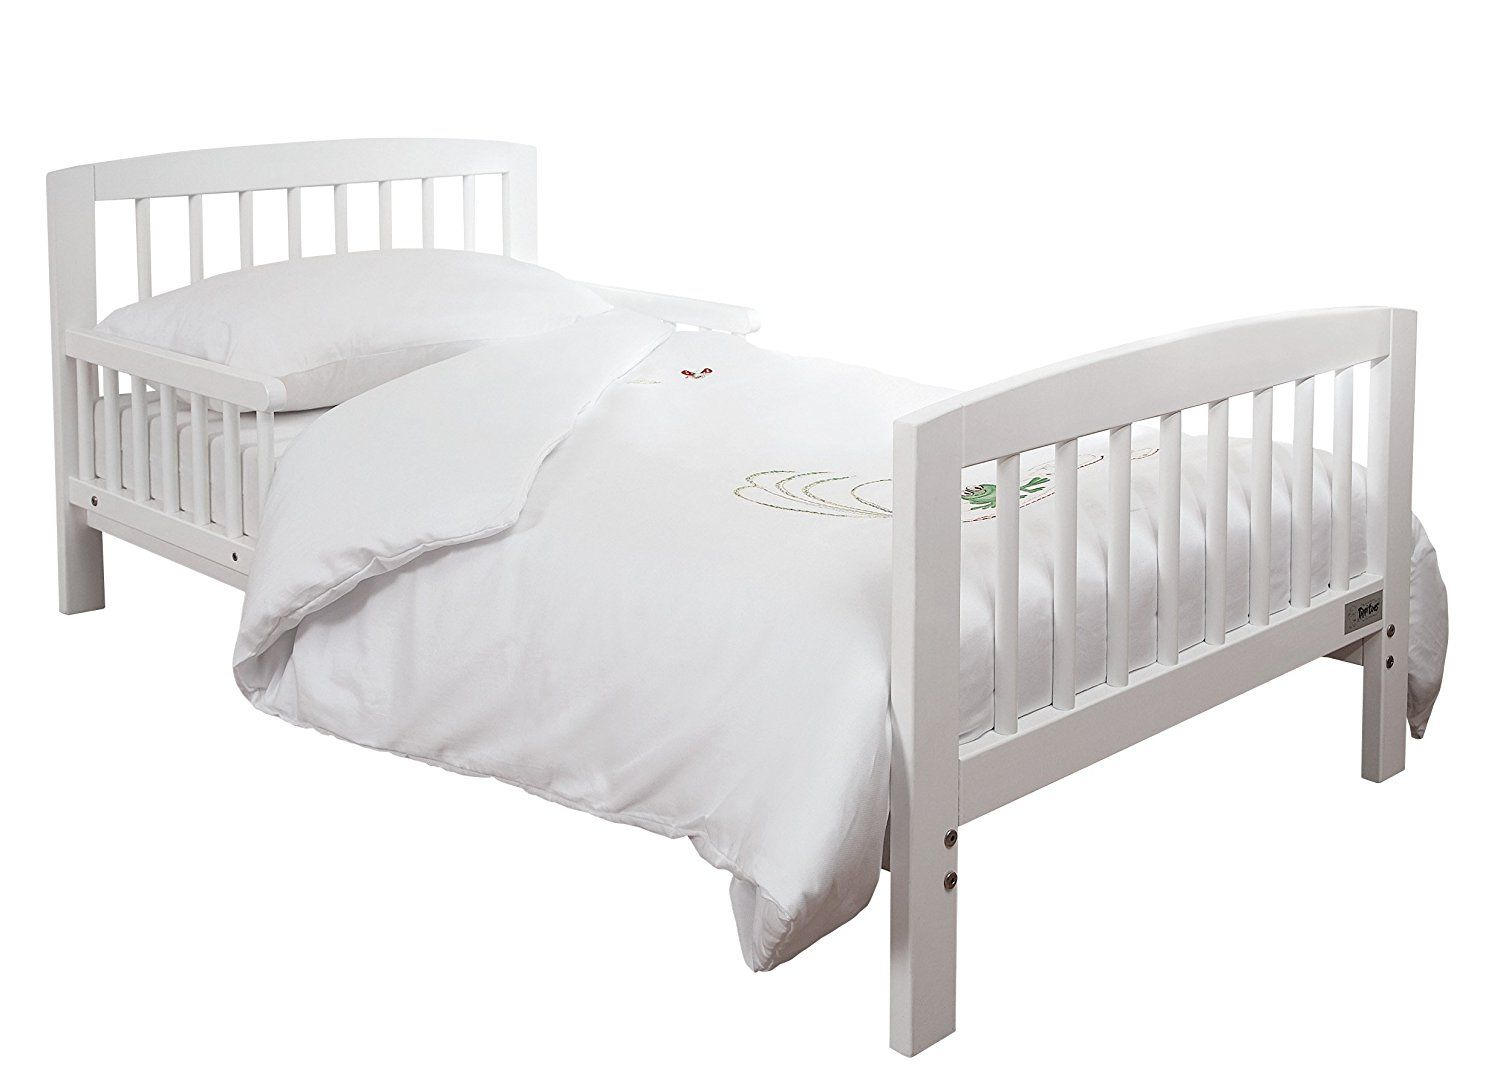 55 white toddler bed with mattress ideas to decorate bedroom